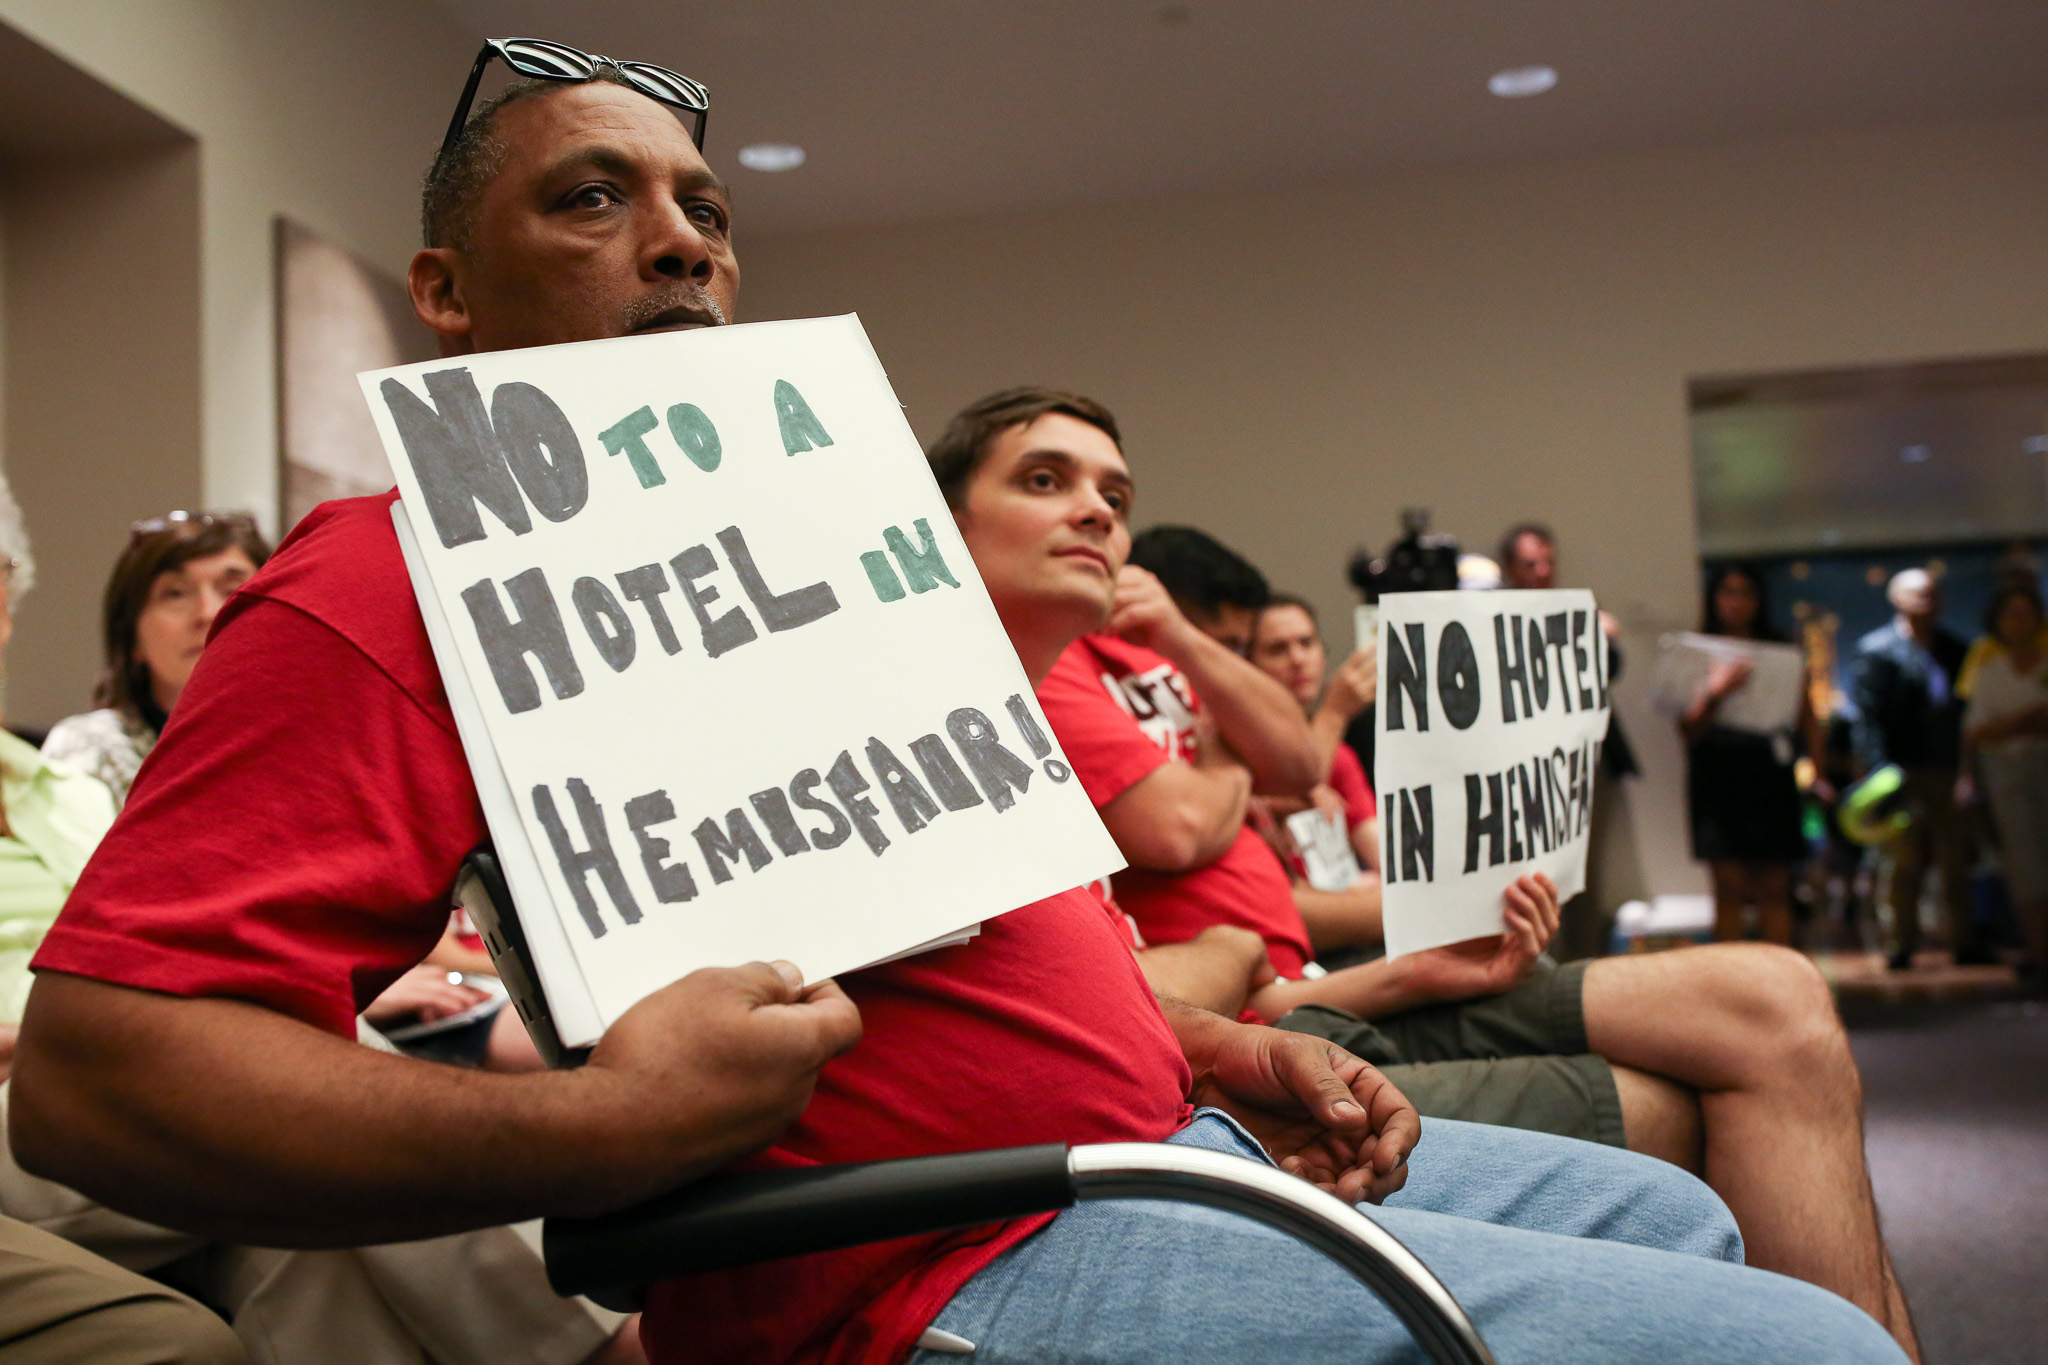 """Unite Here activist Rober Lee holds up a sign that reads: """"NO TO A HOTEL IN HEMISFAIR!"""""""